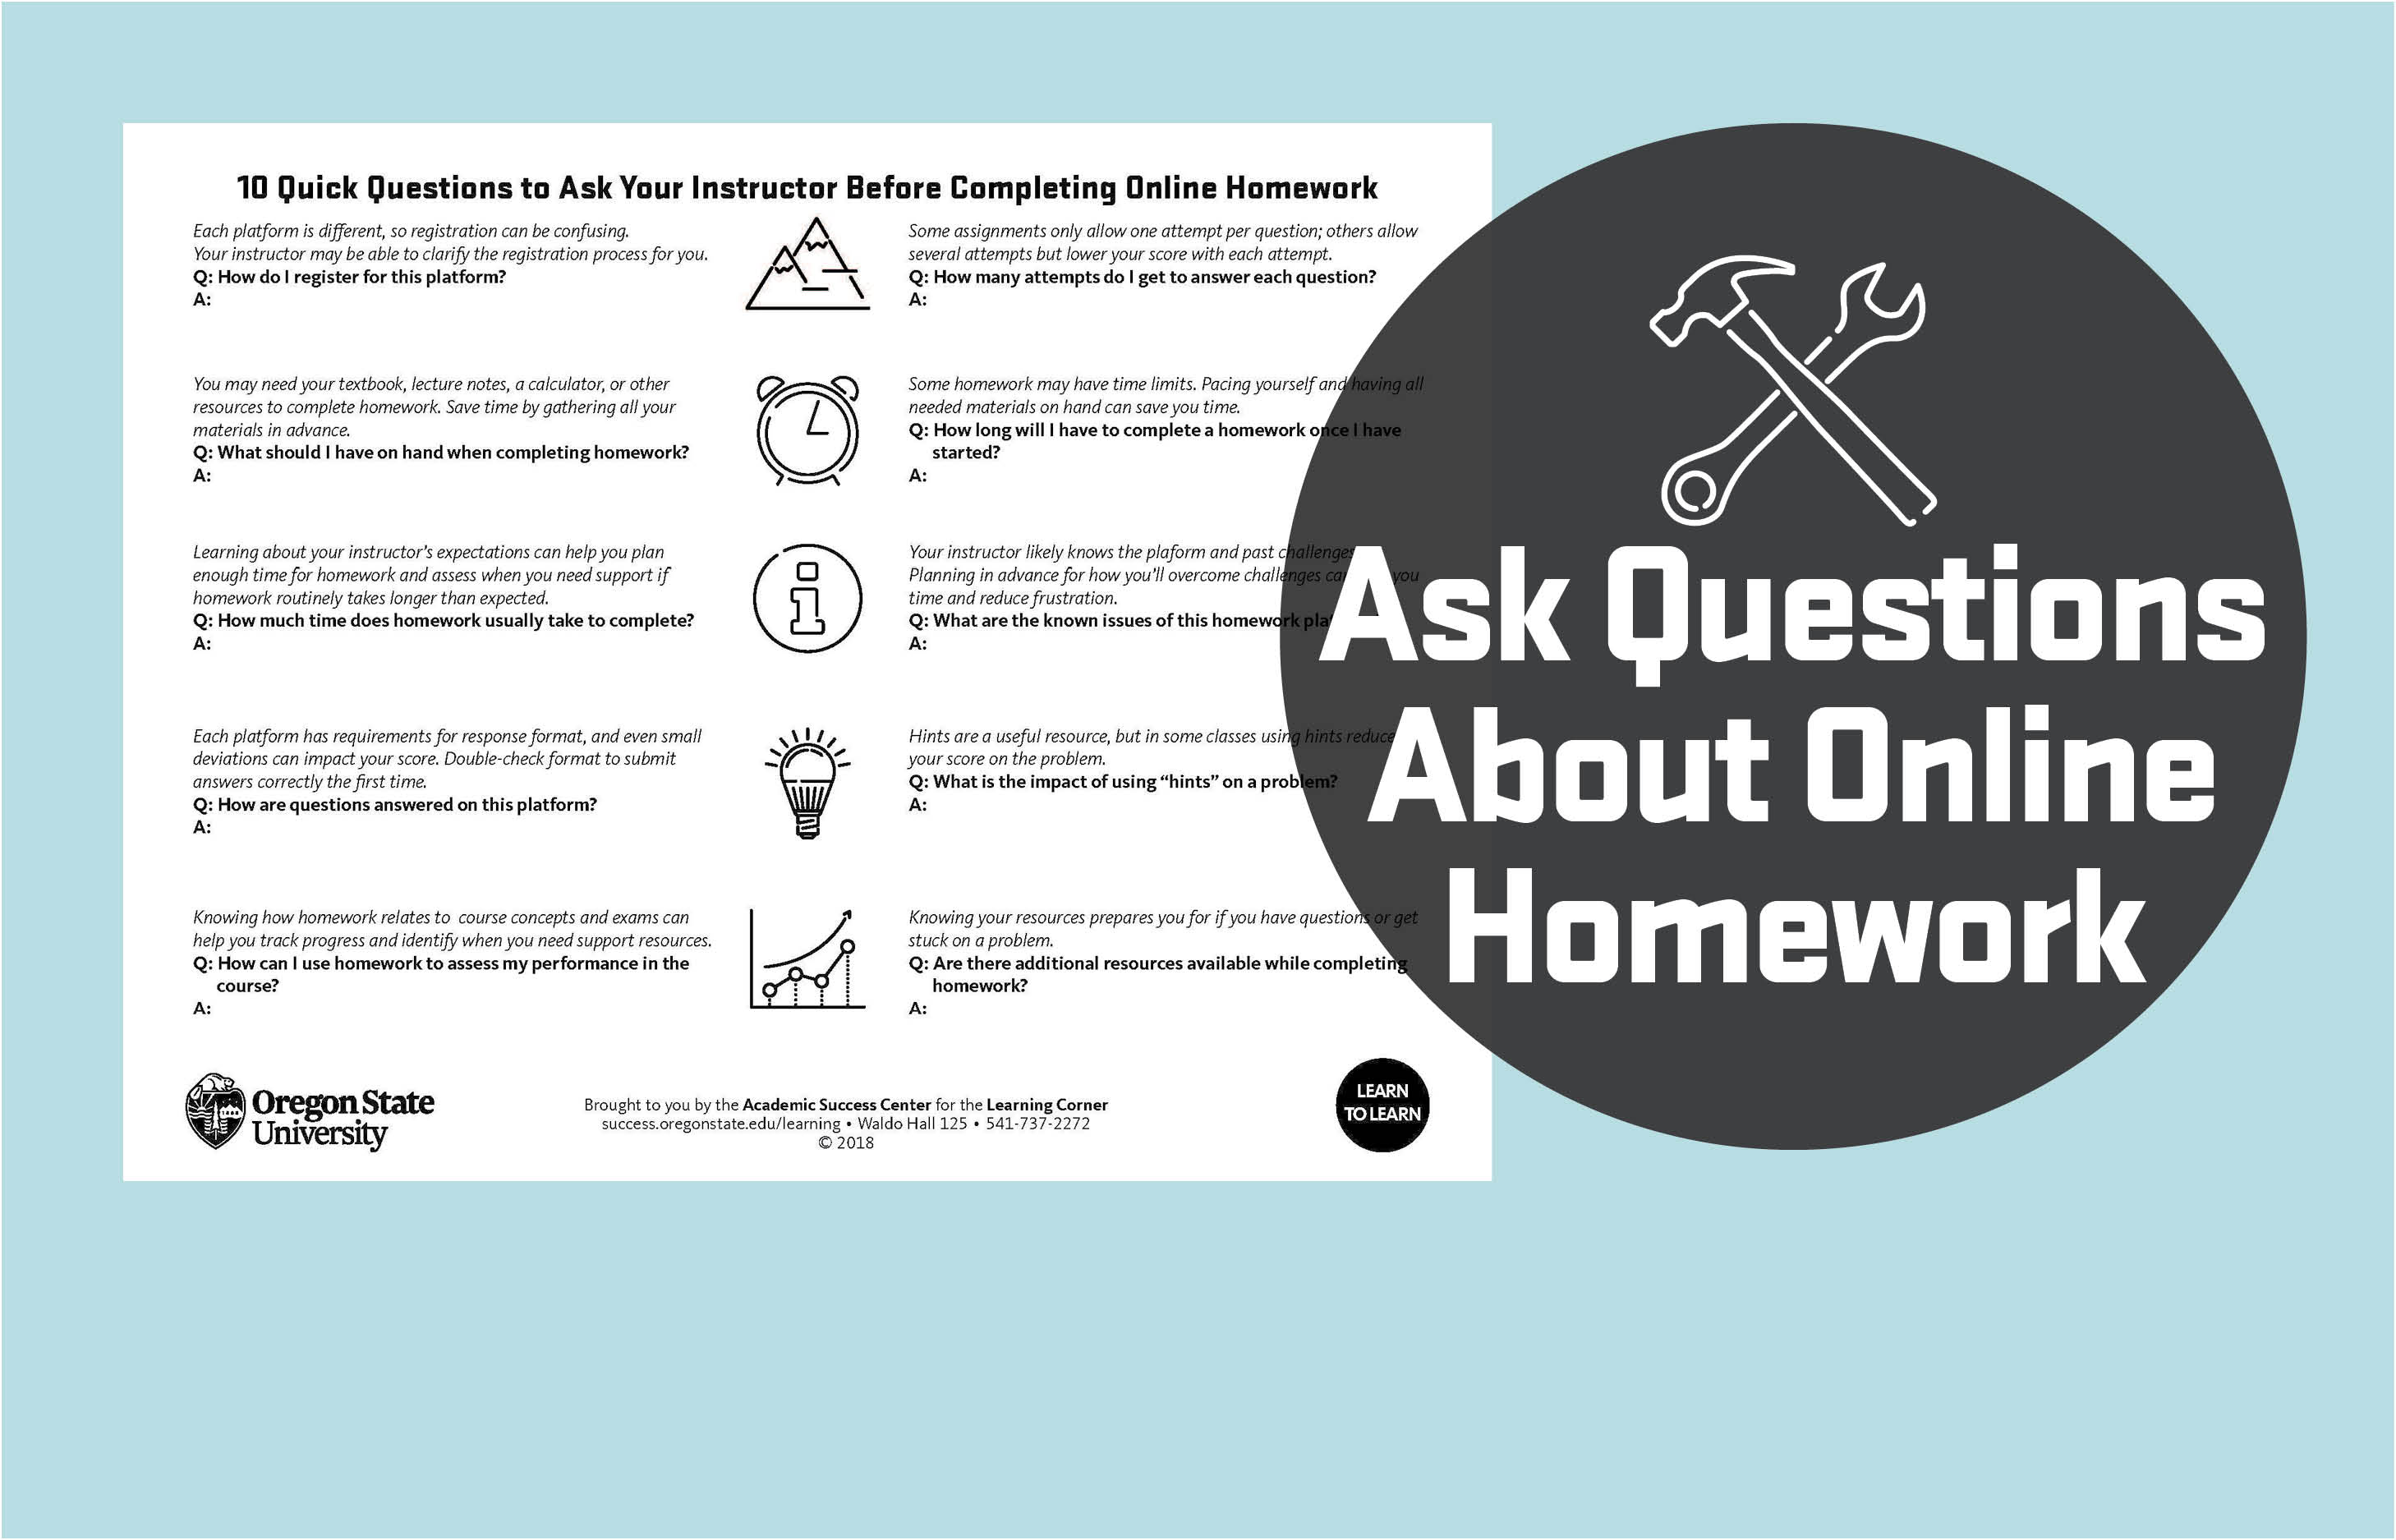 10 Quick Questions to Ask Your Instructor Before Completing Online Homework